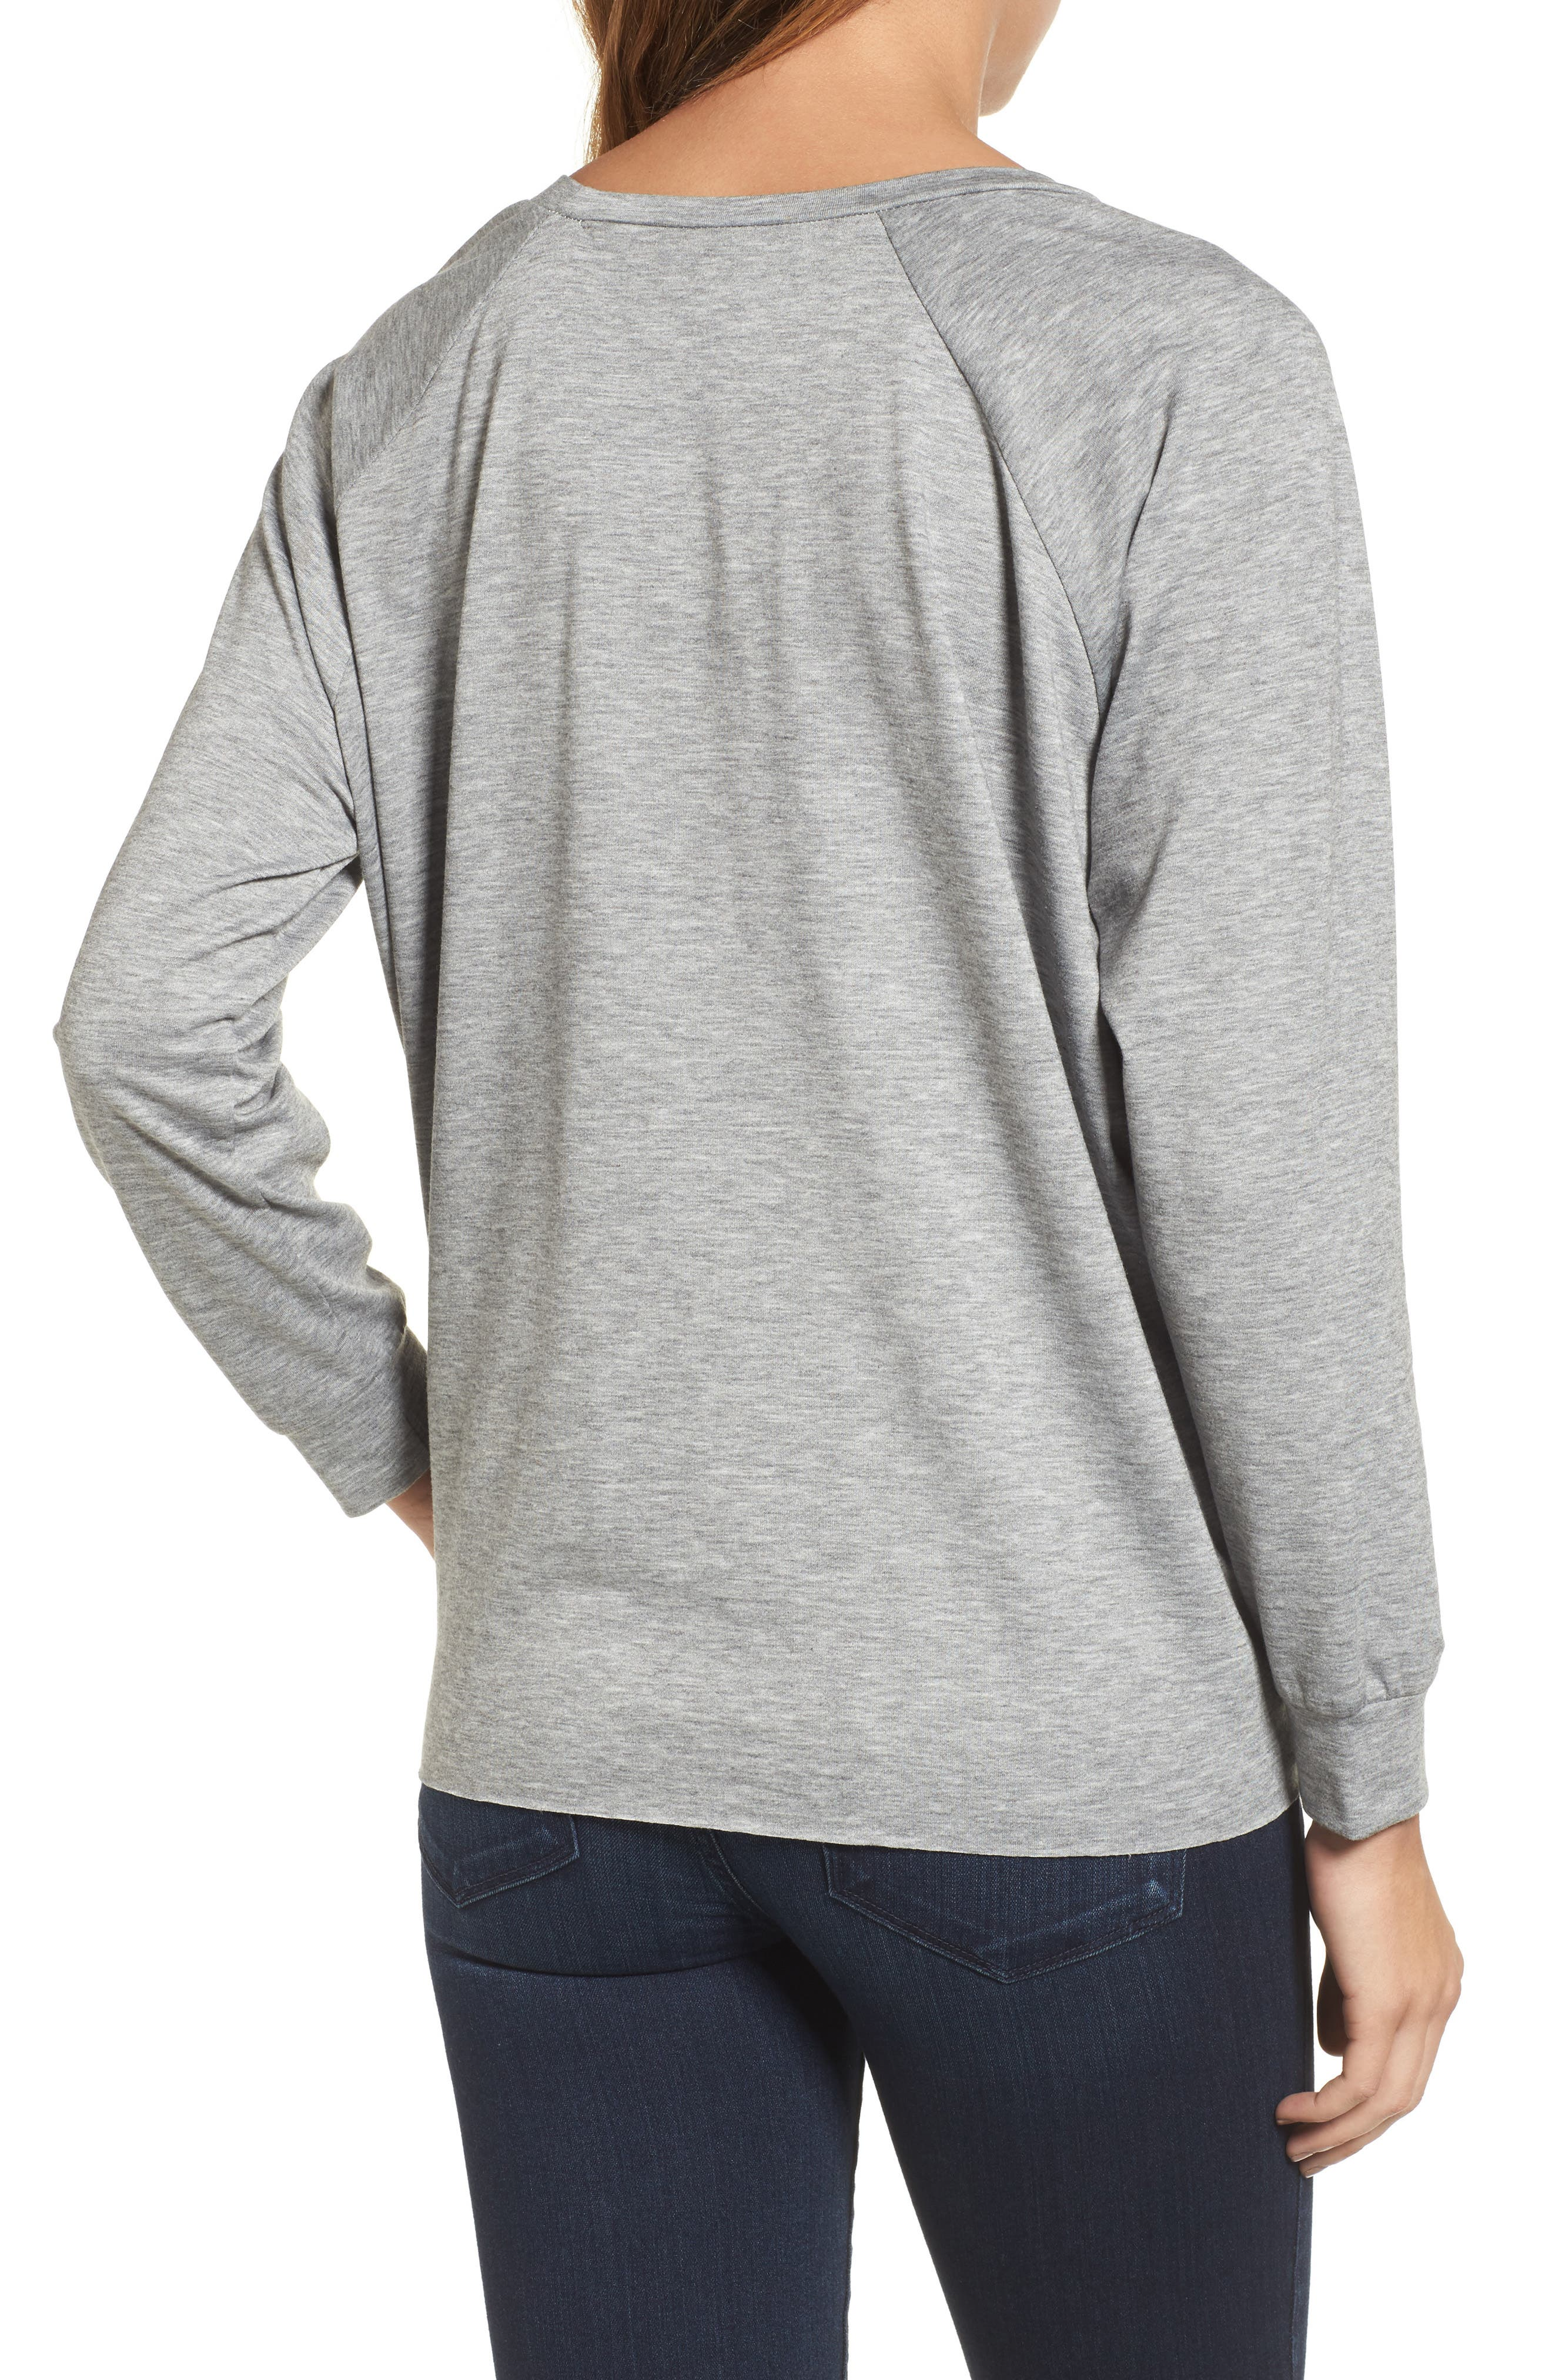 Alternate Image 2  - Caslon® Tie Front Sweatshirt (Regular & Petite)